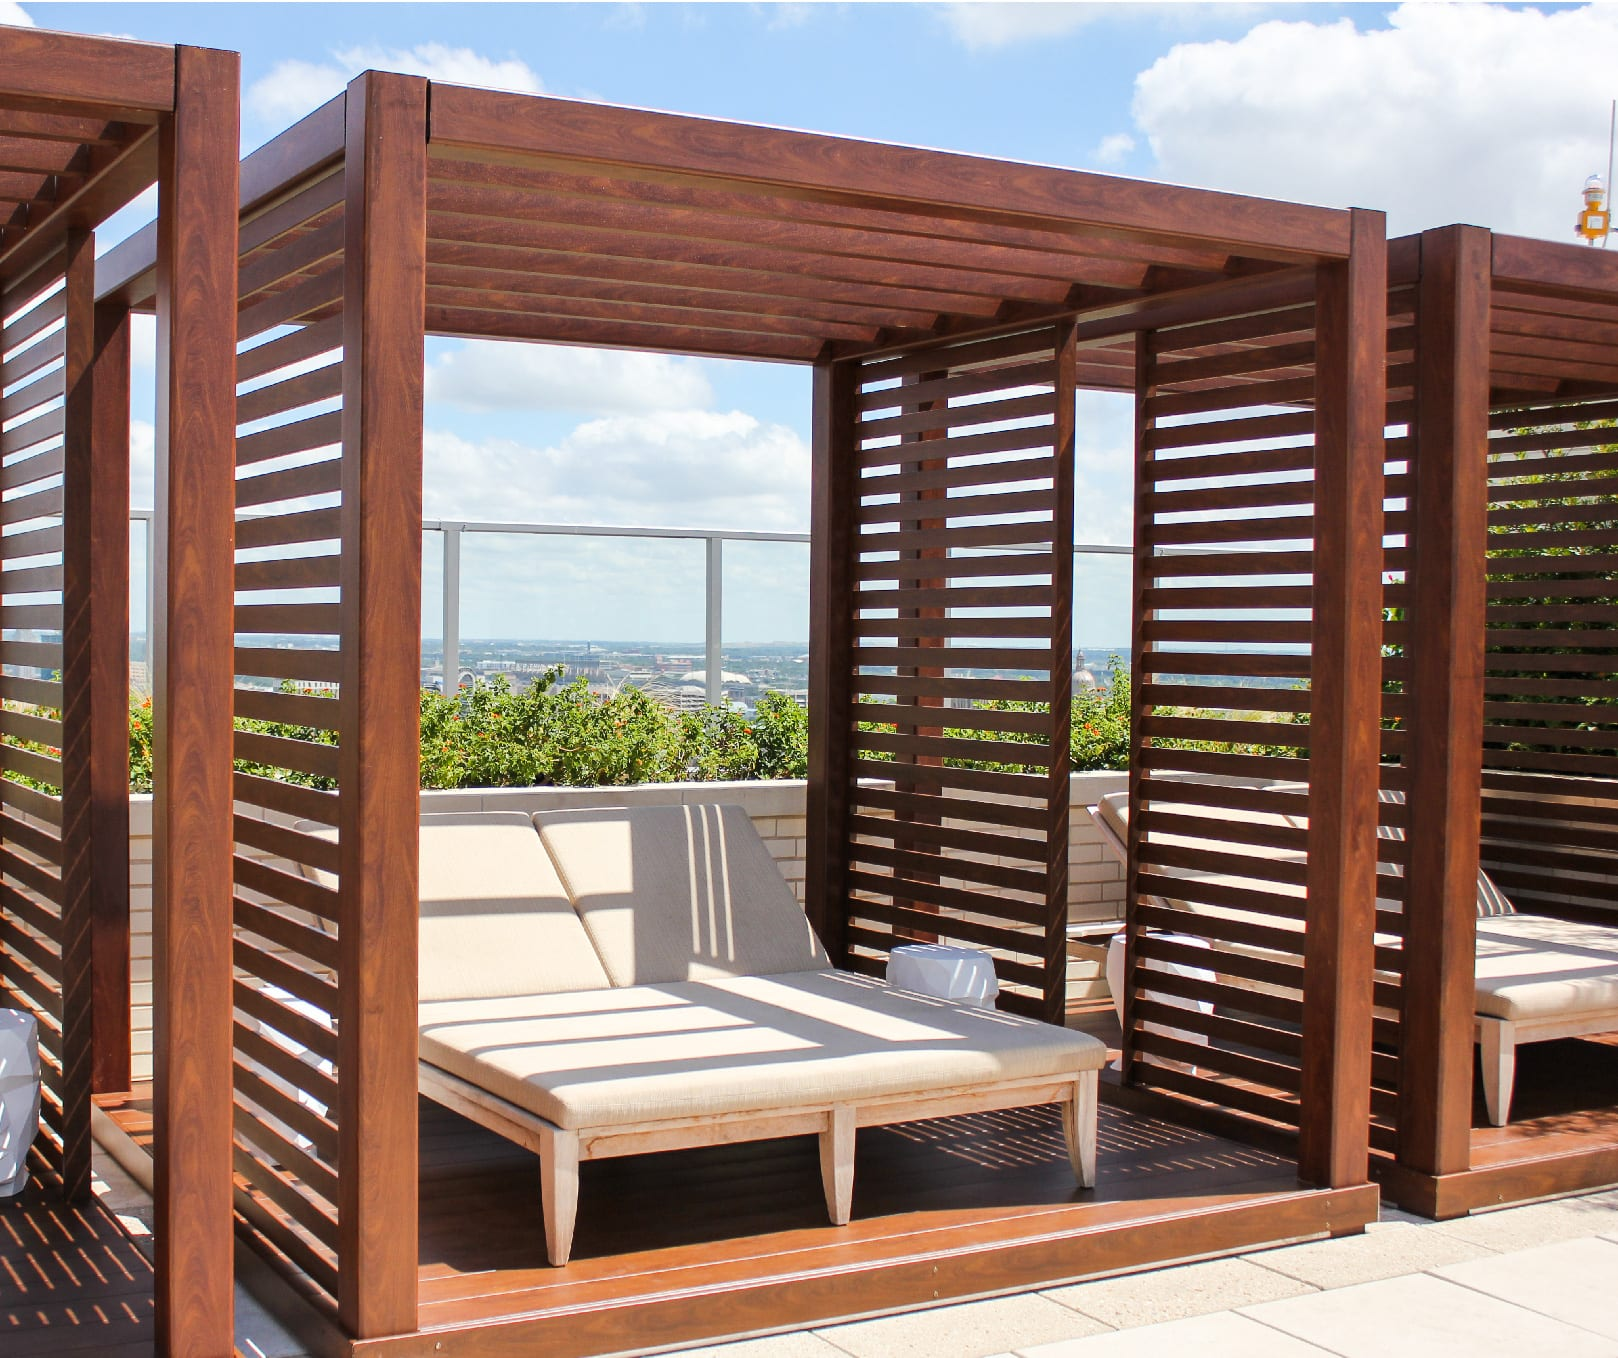 Aluminum Awning & Pergola Kits that Look Like Wood | Knotwood